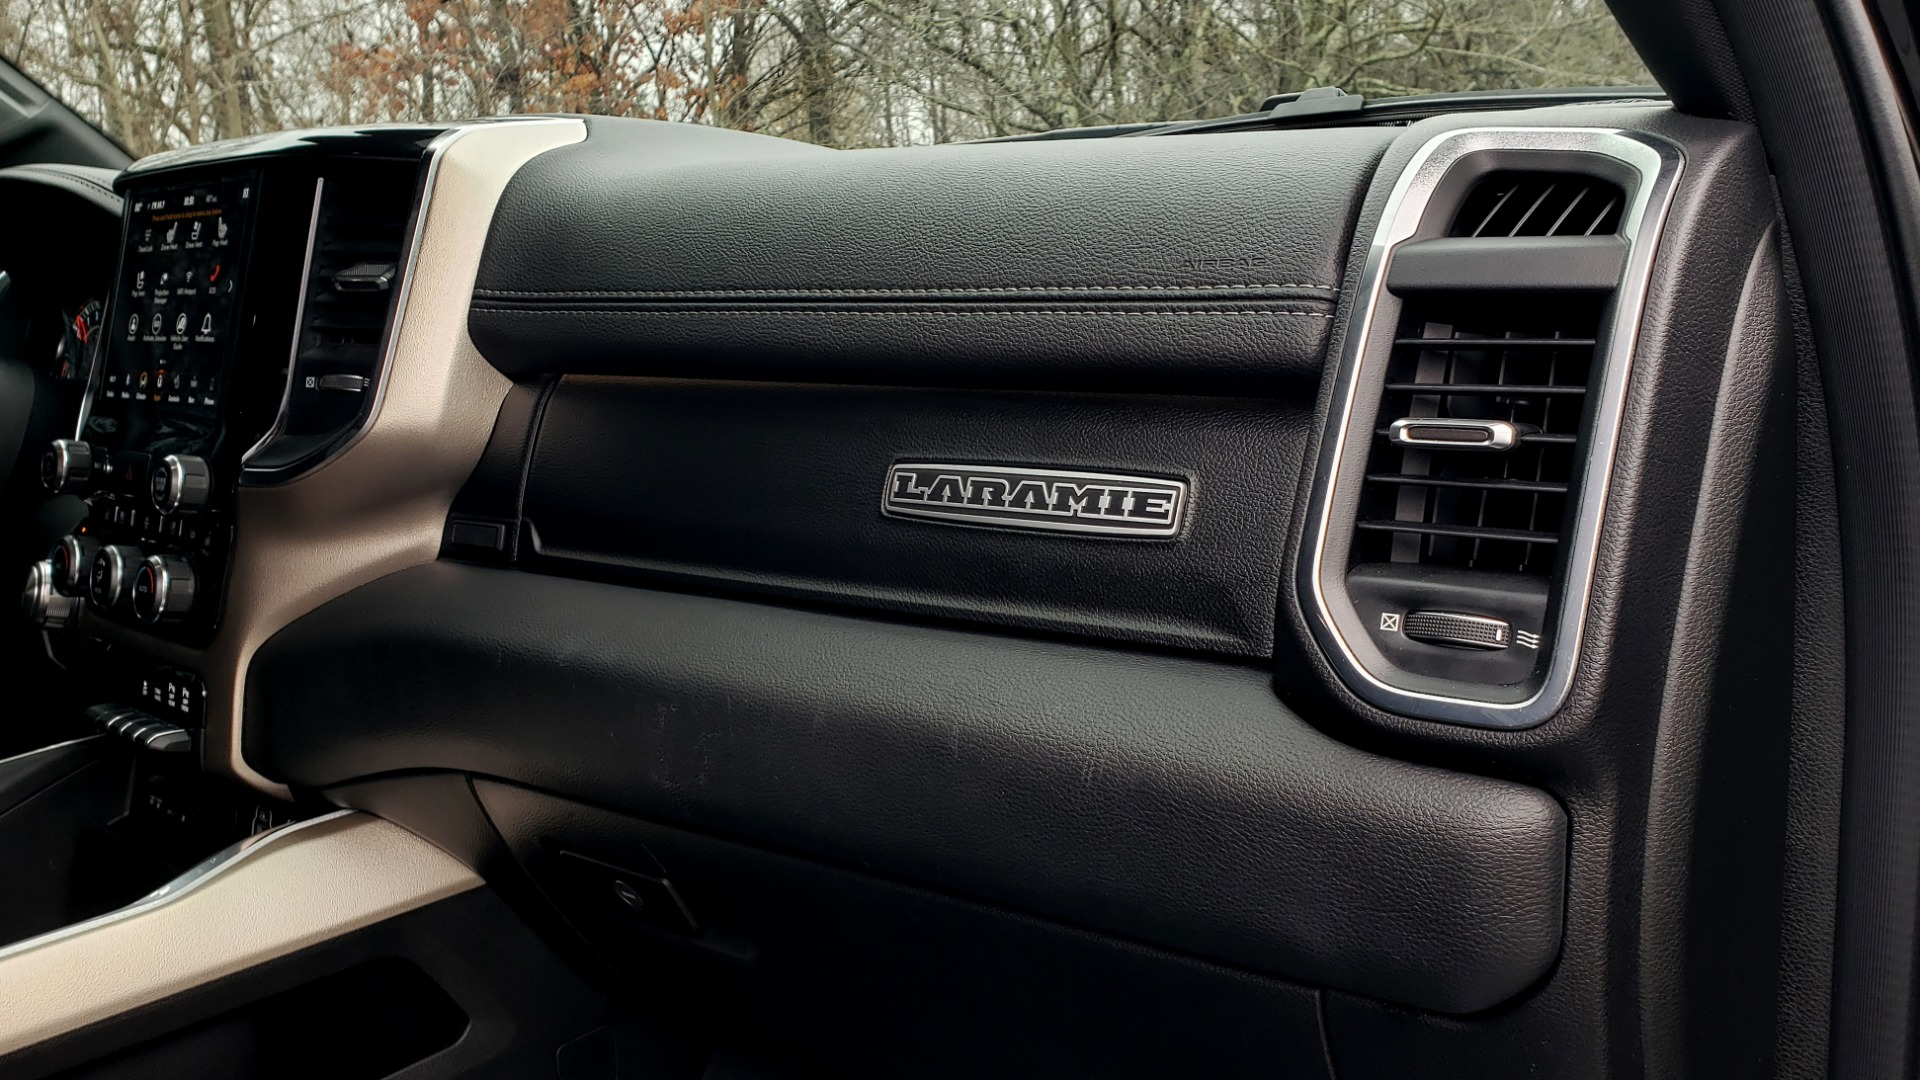 Used 2019 Ram 1500 LARAMIE SPORT / 2WD / 5.7L HEMI / NAV / BLIND SPOT / HTD STS / REARVIEW for sale Sold at Formula Imports in Charlotte NC 28227 80